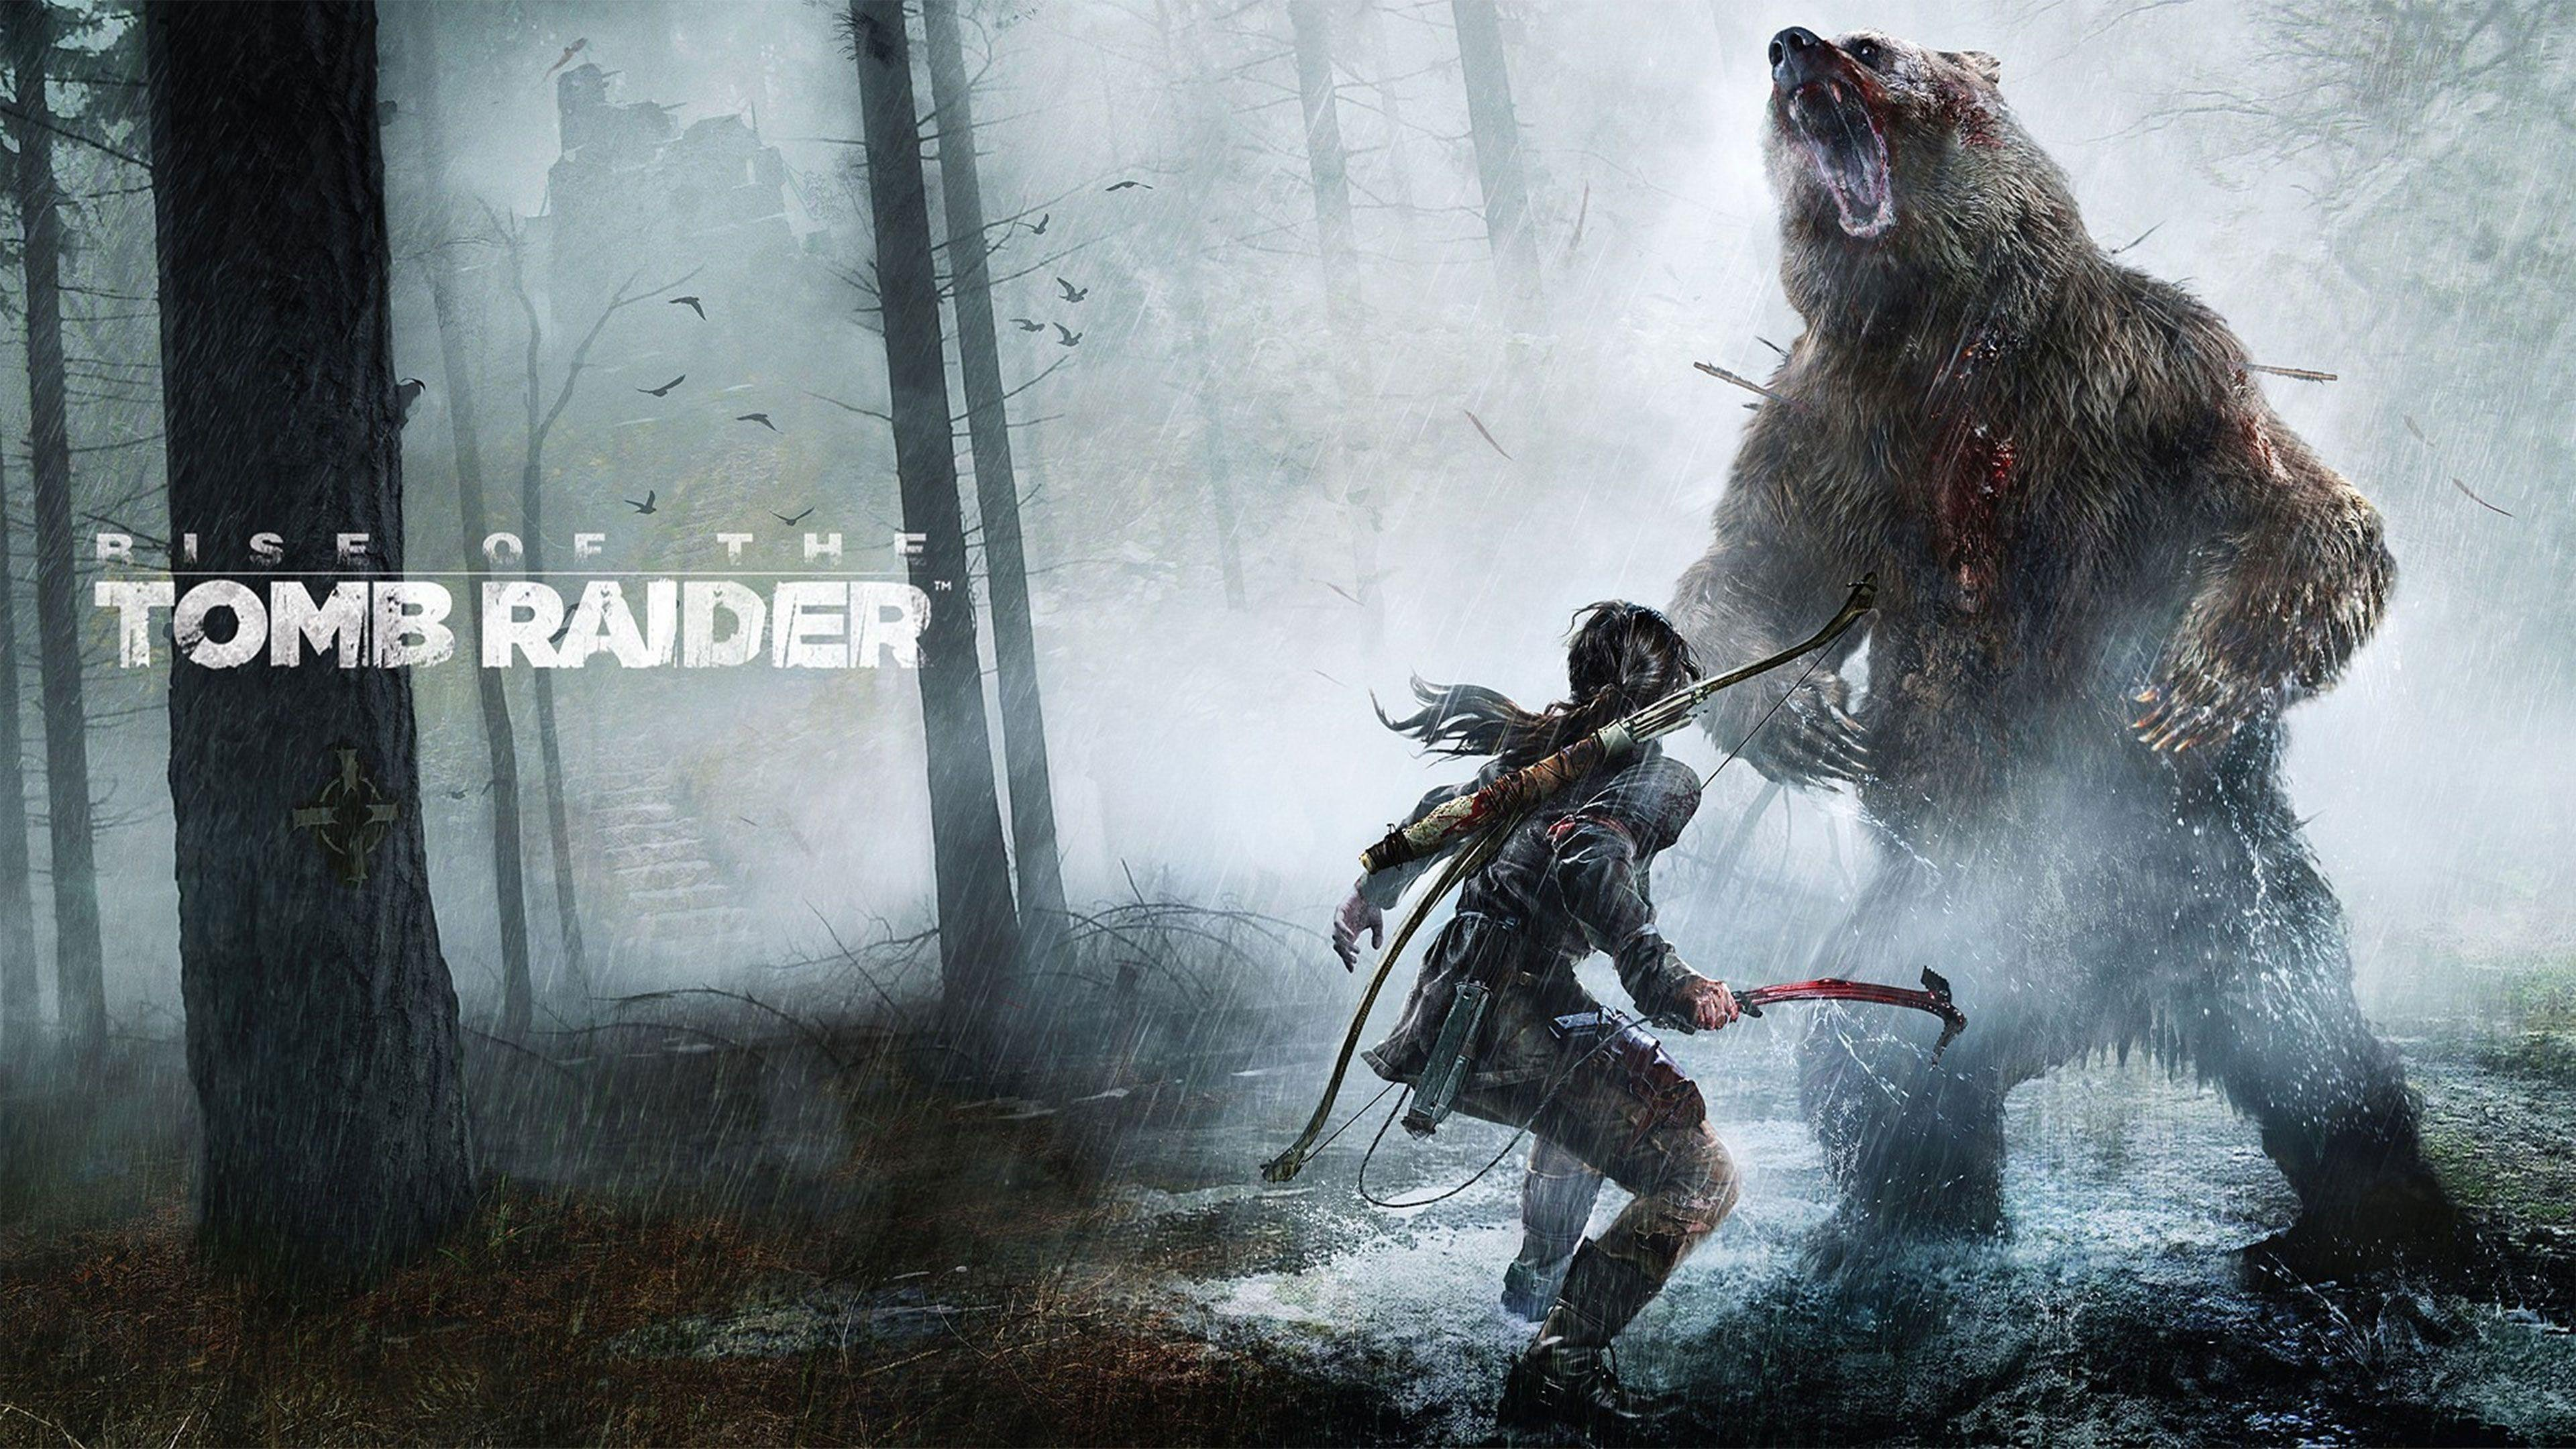 Rise Of The Tomb Raider Wallpapers In Ultra HD